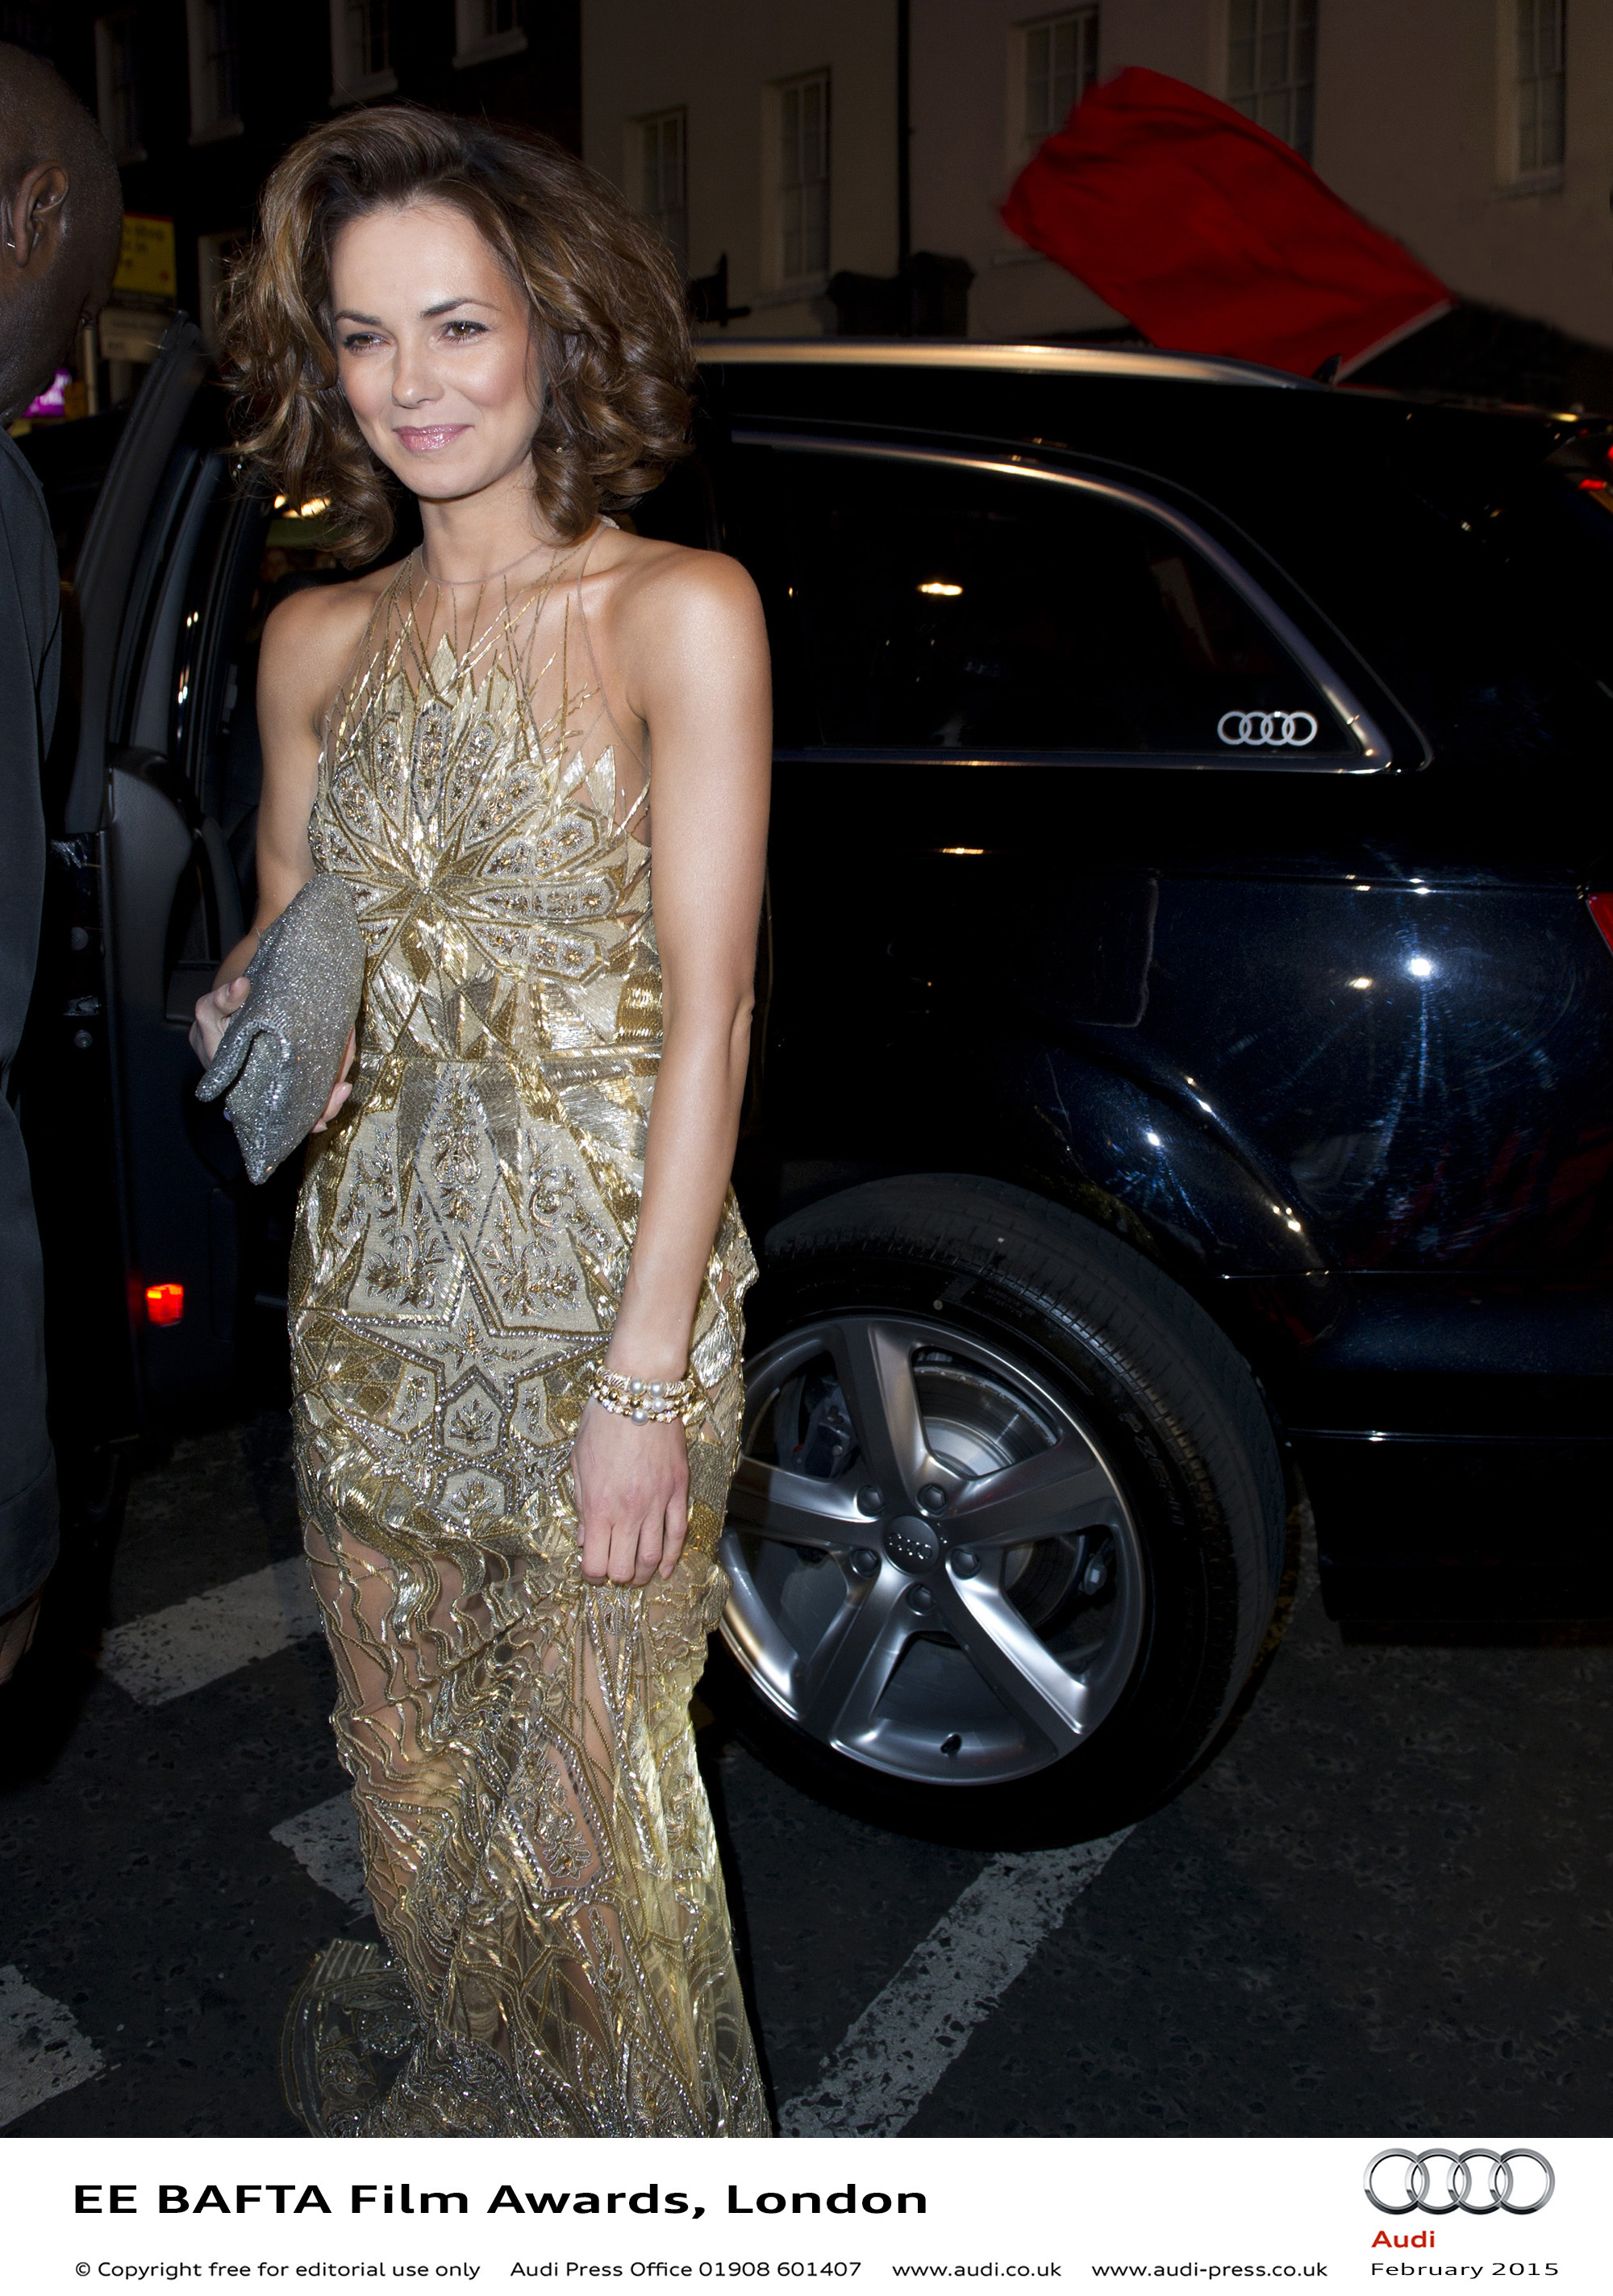 Kara Tointon - EE BAFTA Film Awards